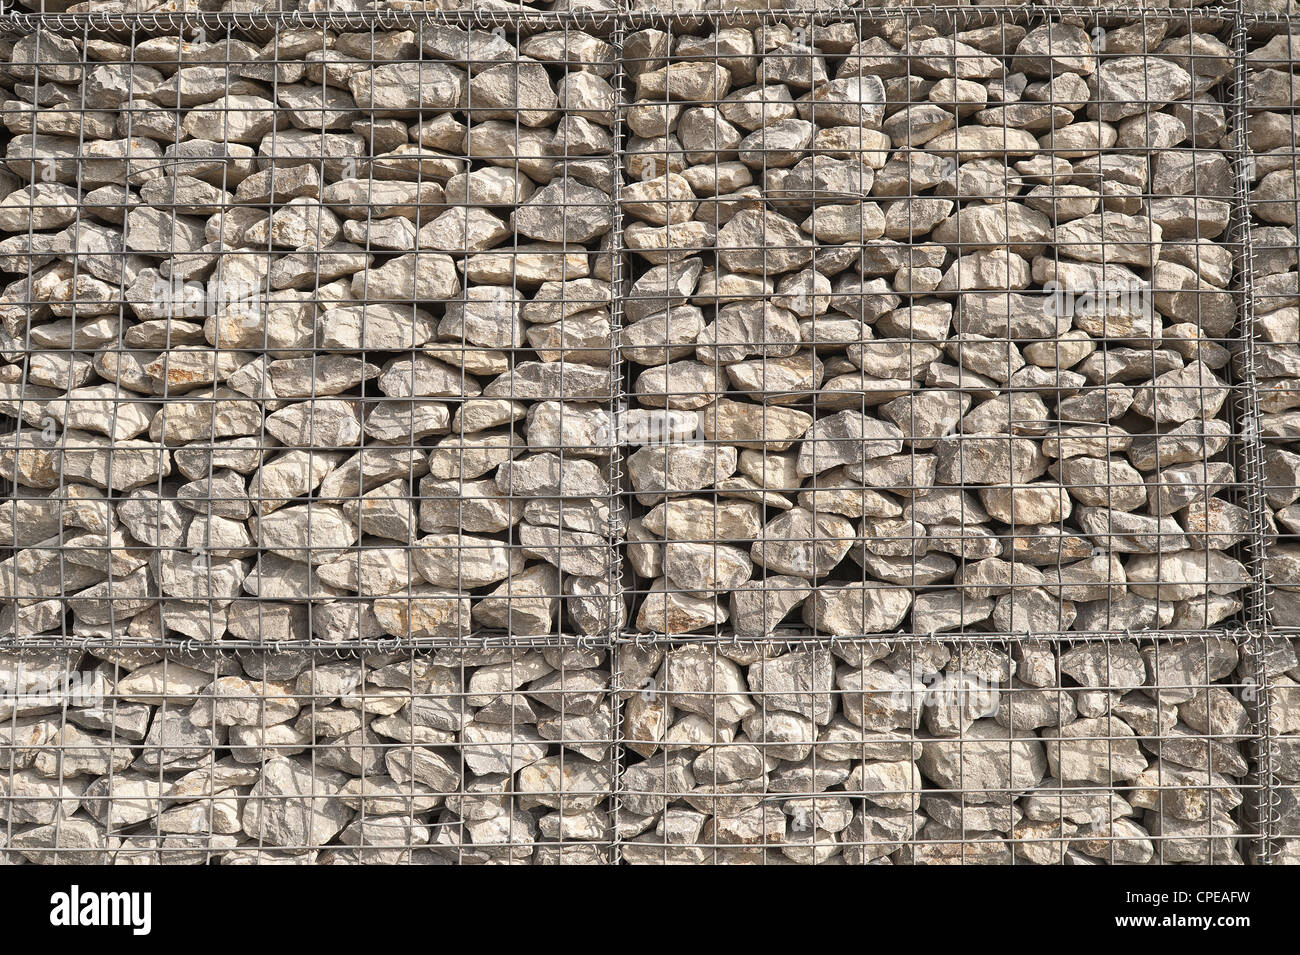 Caged Rock Riprap In Stainless Steel Frames Used As A